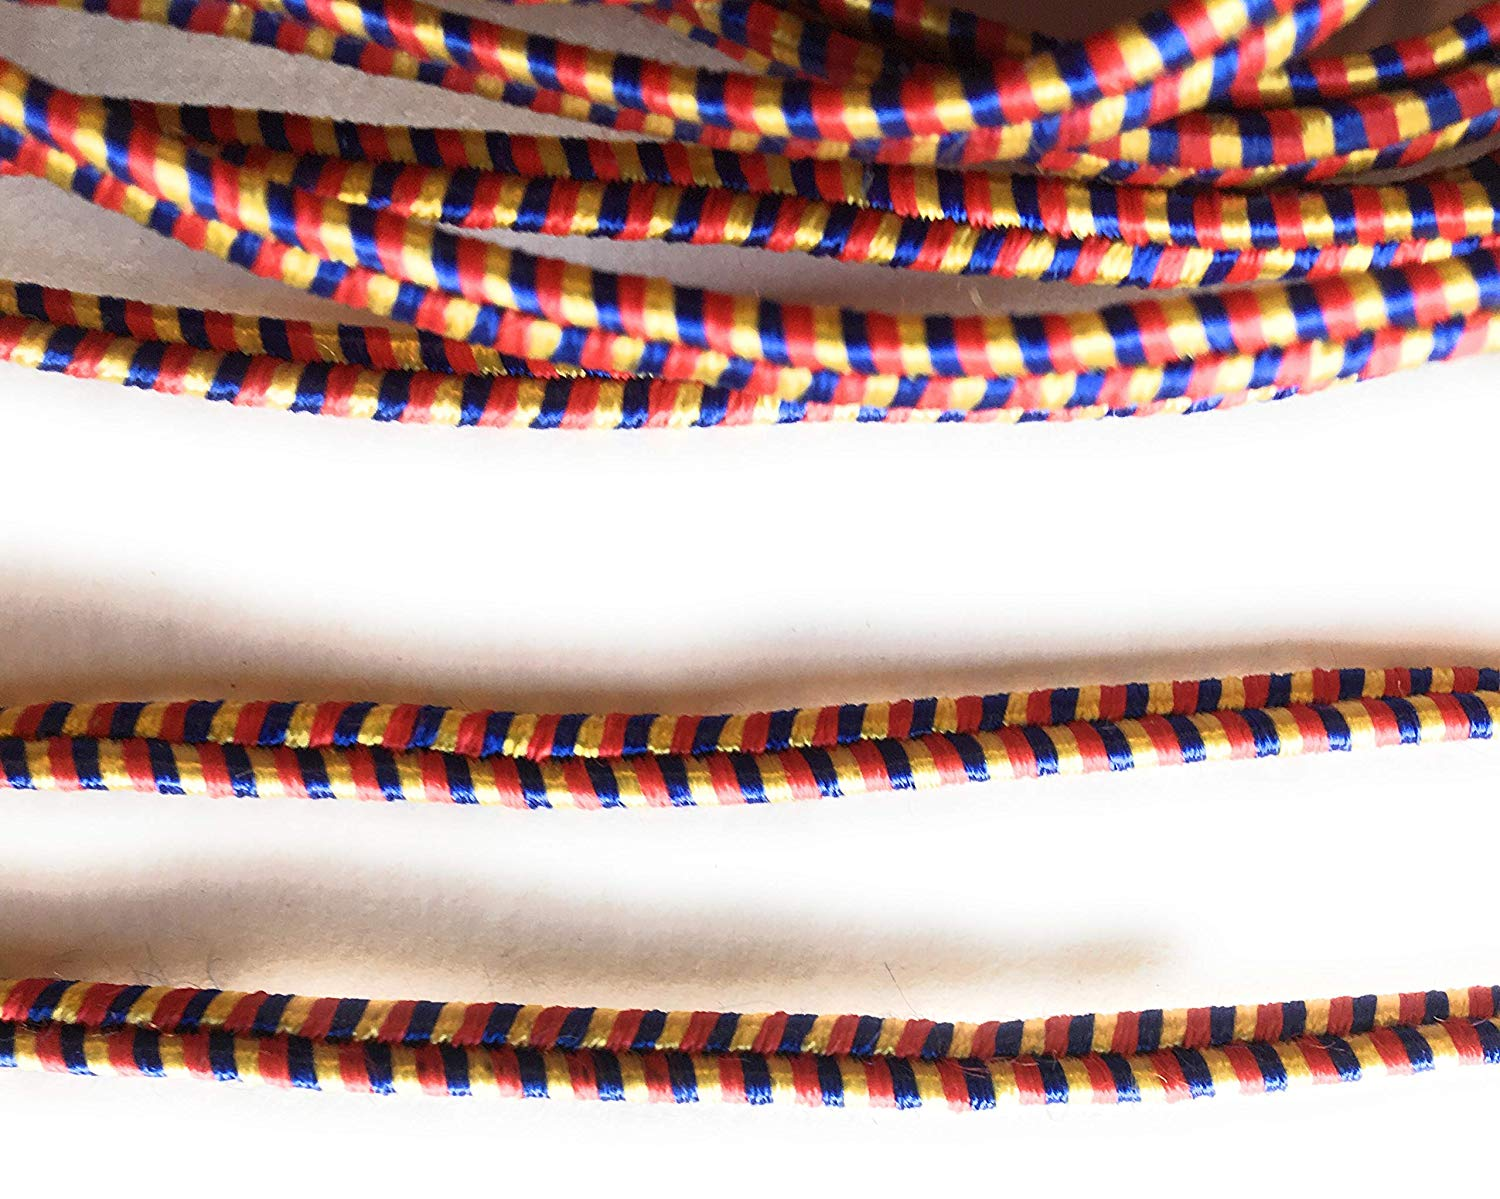 4mm Multi Color Soutache Rayon Braided Cord Beading, Sewing,Quilting Trimming String 10 Yards